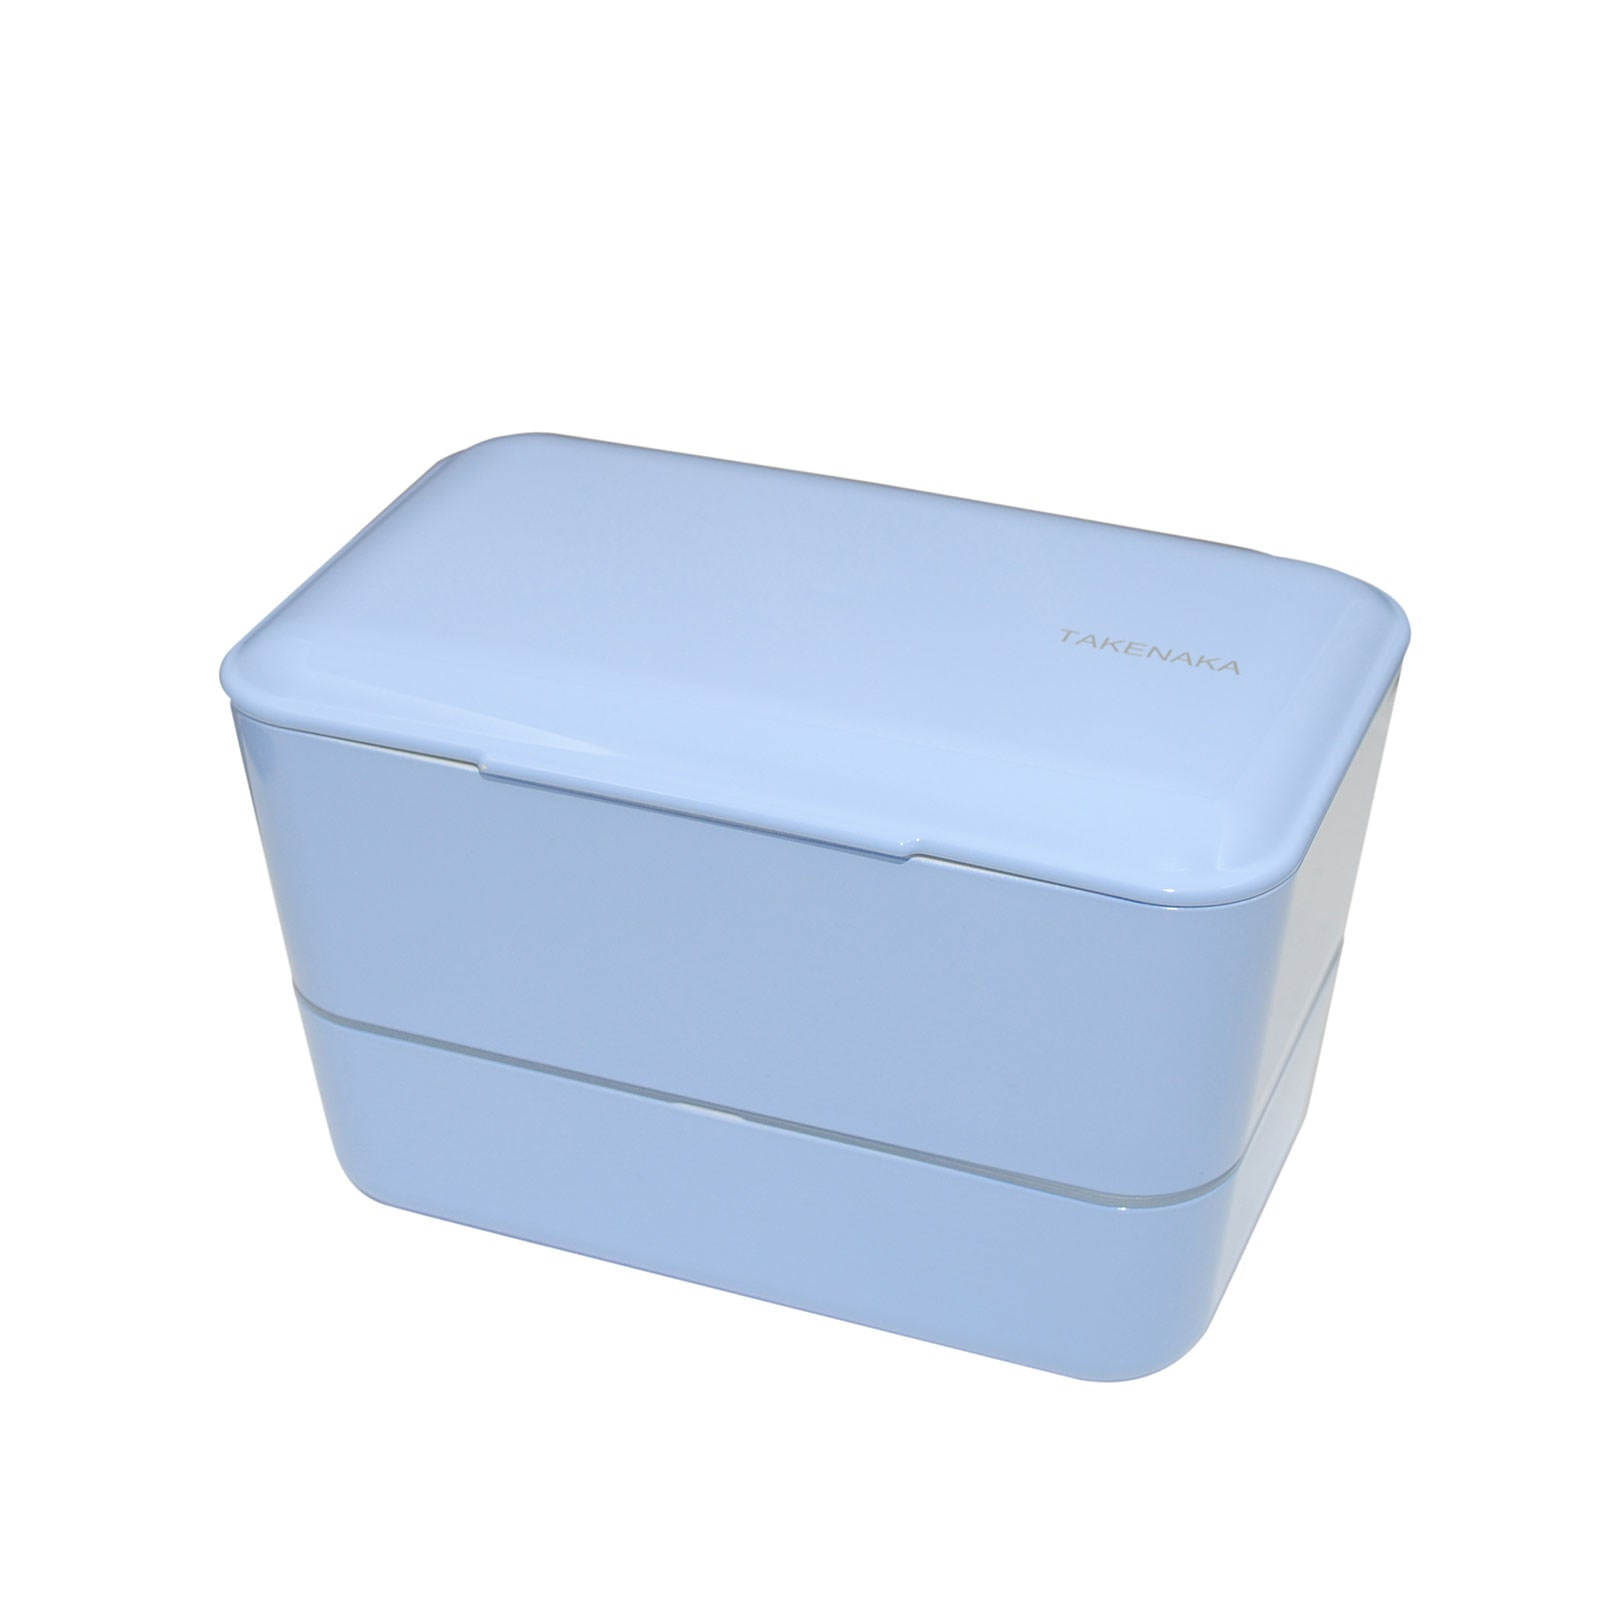 BENTO-BOX EXPANDED DOUBLE Serenity Blue